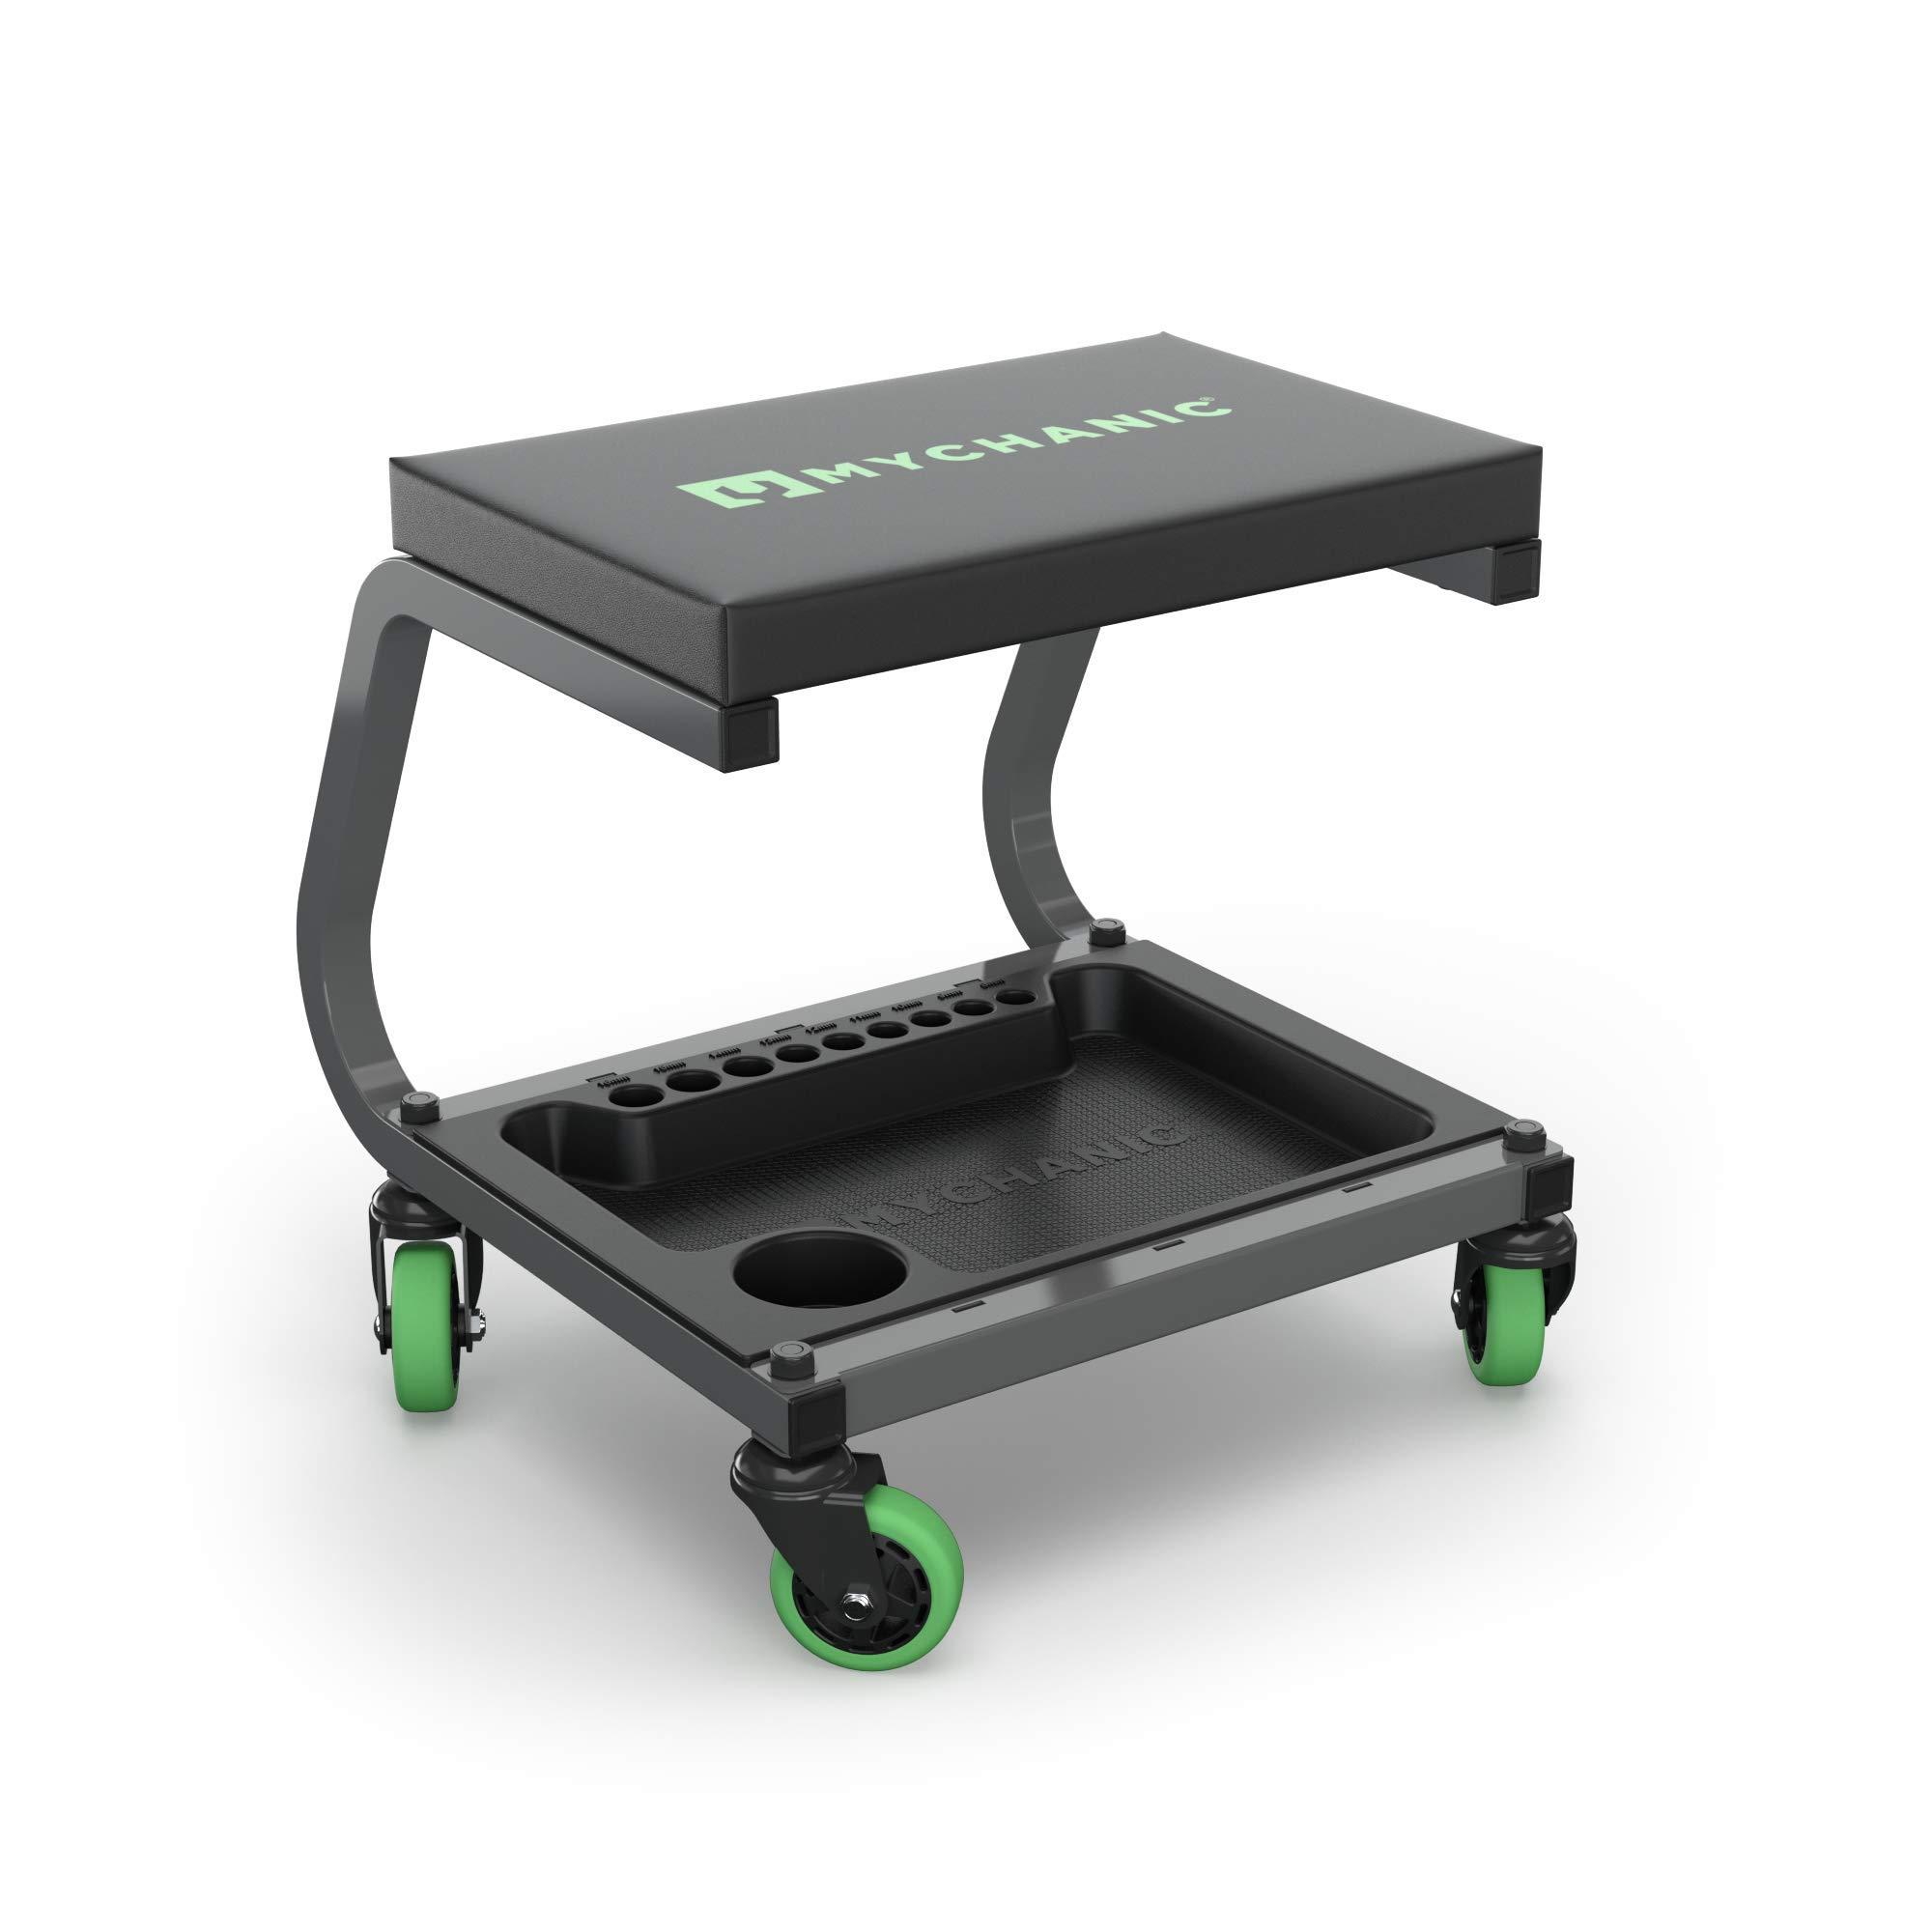 MYCHANIC Fastback Shop Stool | Padded Rolling Seat with Premium Casters and Storage Tray